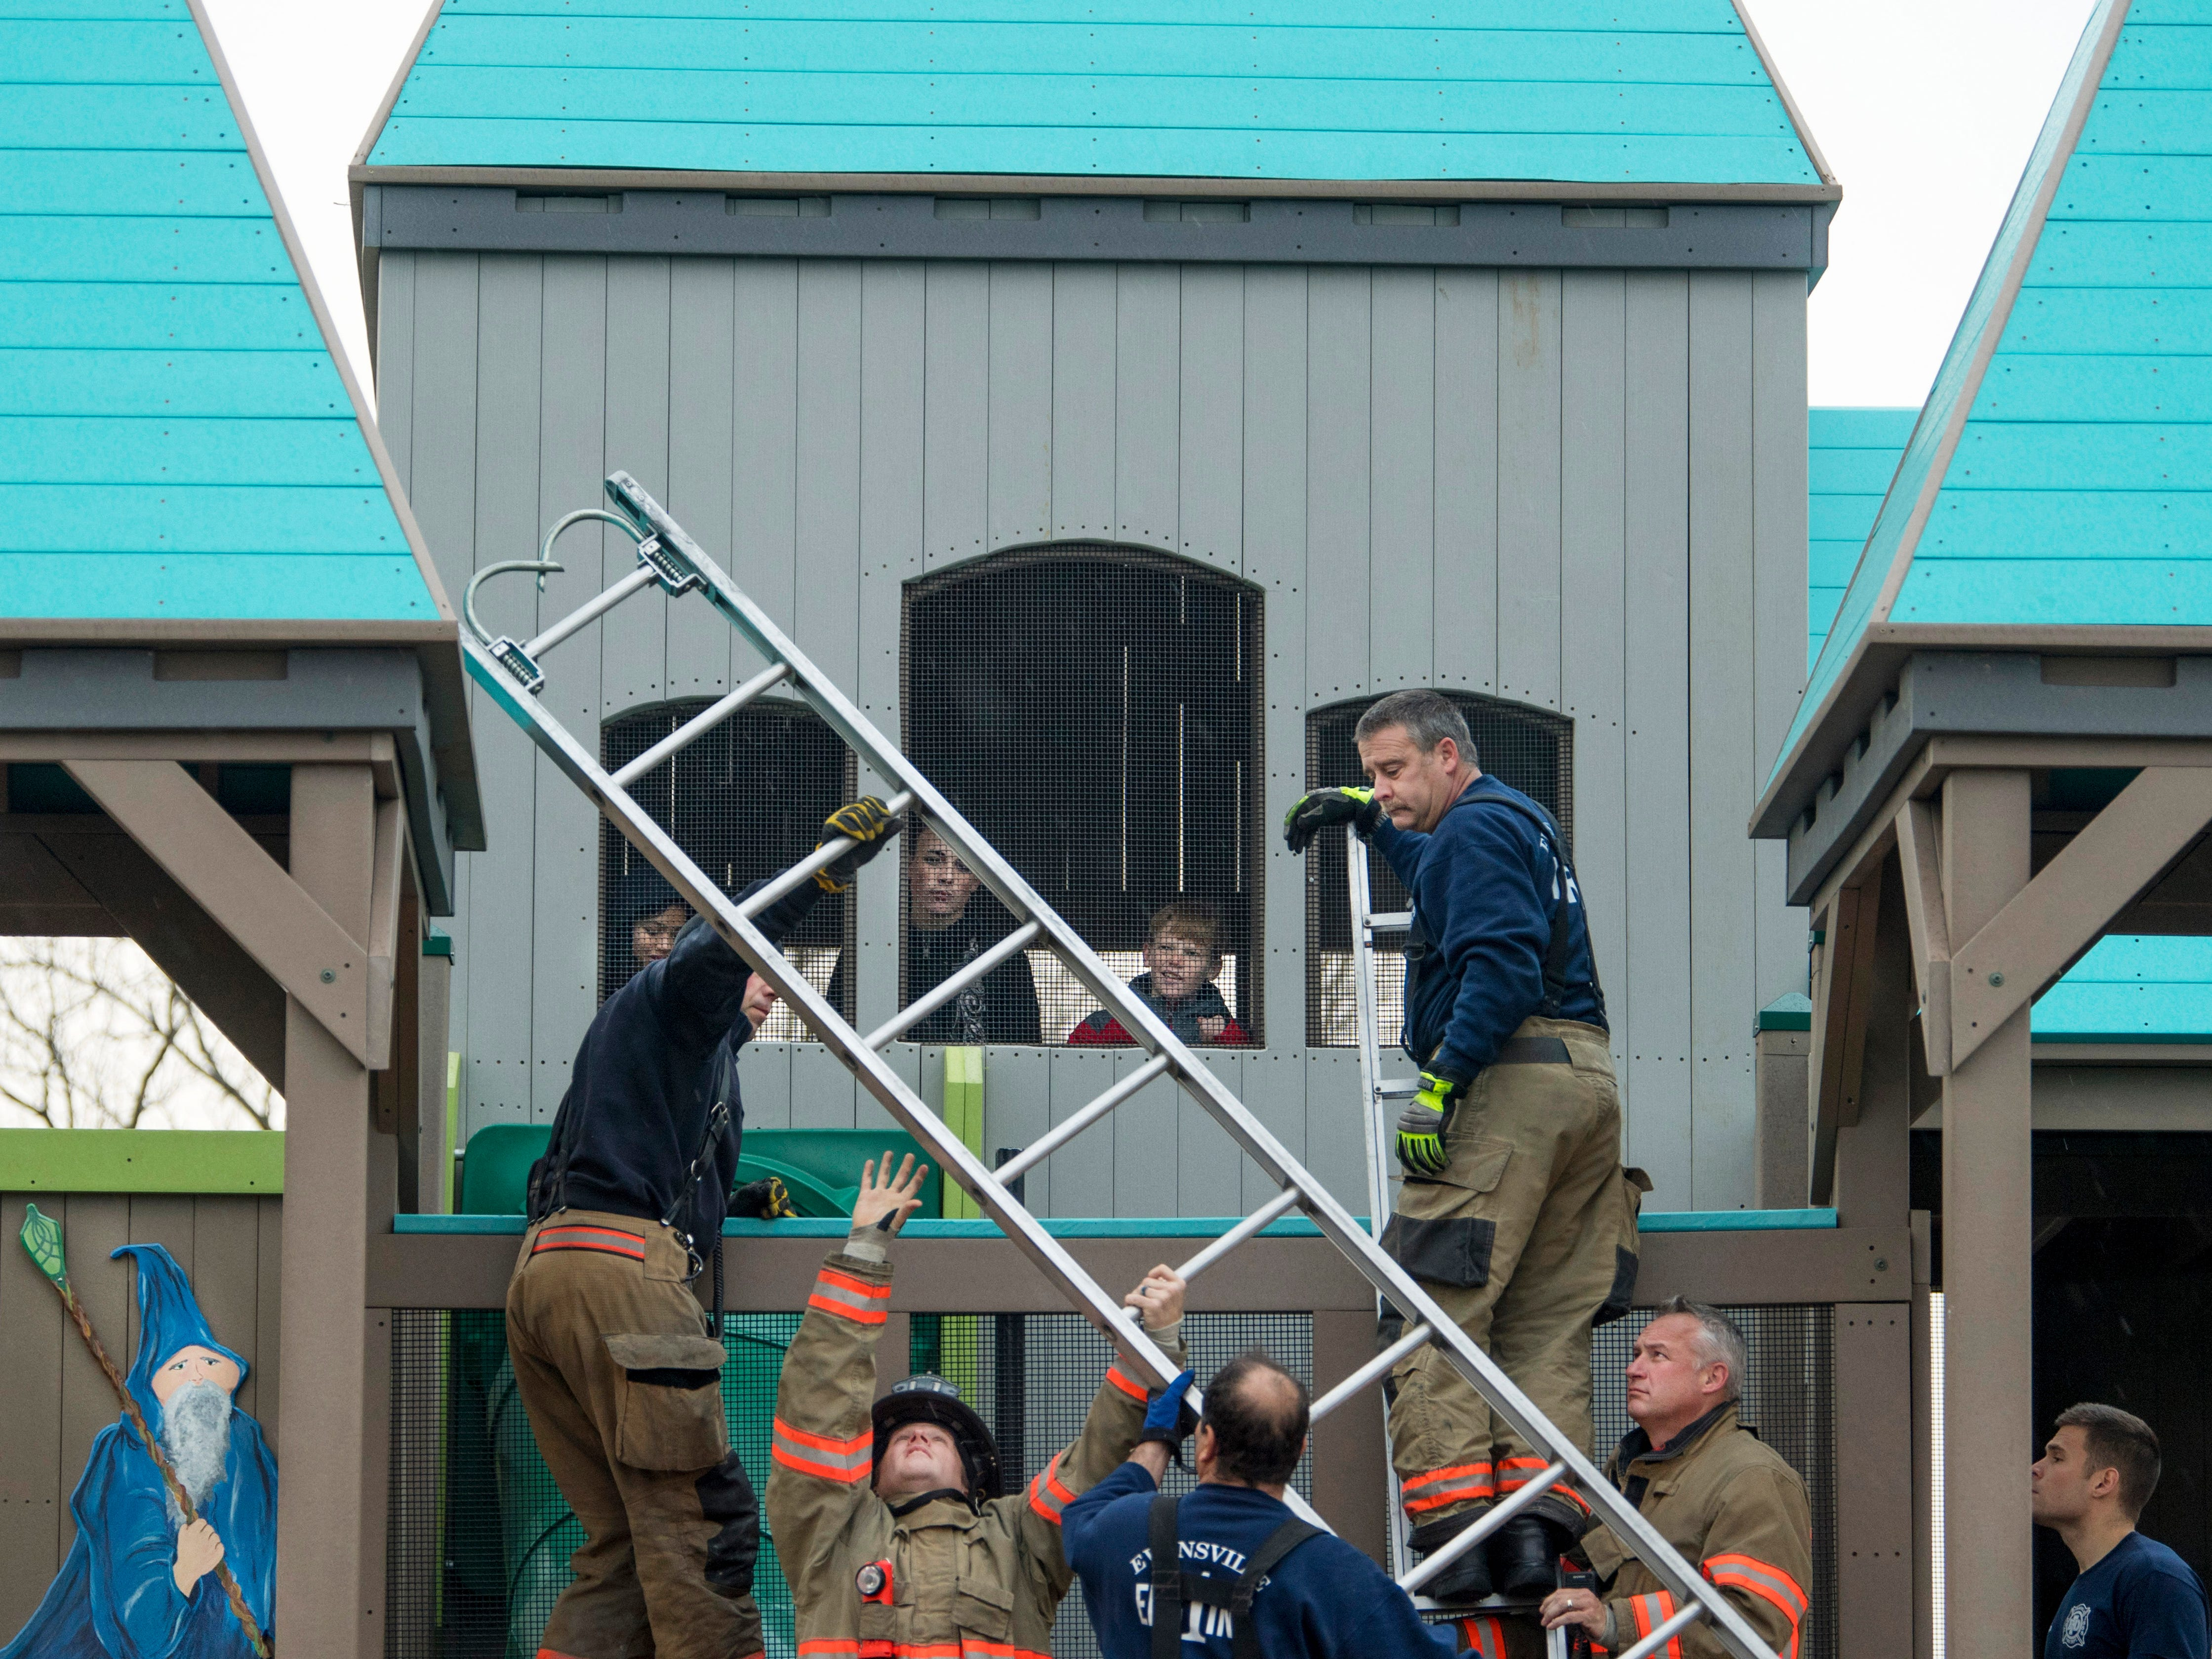 Evansville Fire Department rescue personnel with Fire Station No. 1 maneuver a ladder to rescue a 15-year-old boy who found himself trapped in a portion of the castle at Mickey's Kingdom Monday afternoon. The boy had climbed into an area that housed a tube slide but realized there was no way to escape without help. His friends stayed close to record the rescue with their cell phones.